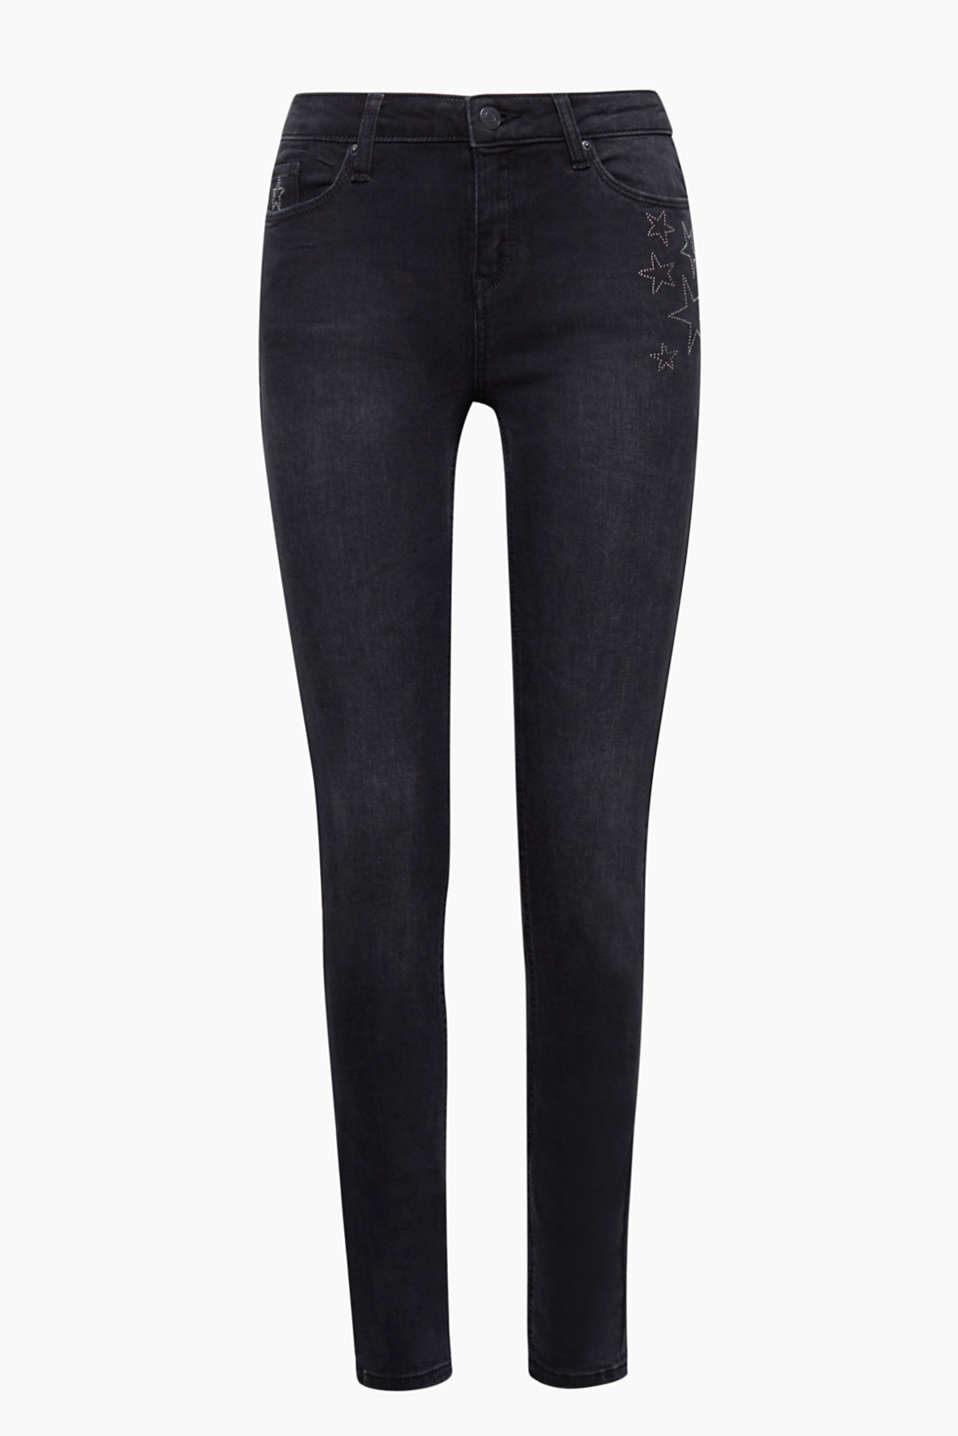 Slim cut, cool star studs: these black jeans with added stretch for comfort will become your favourite jeans!